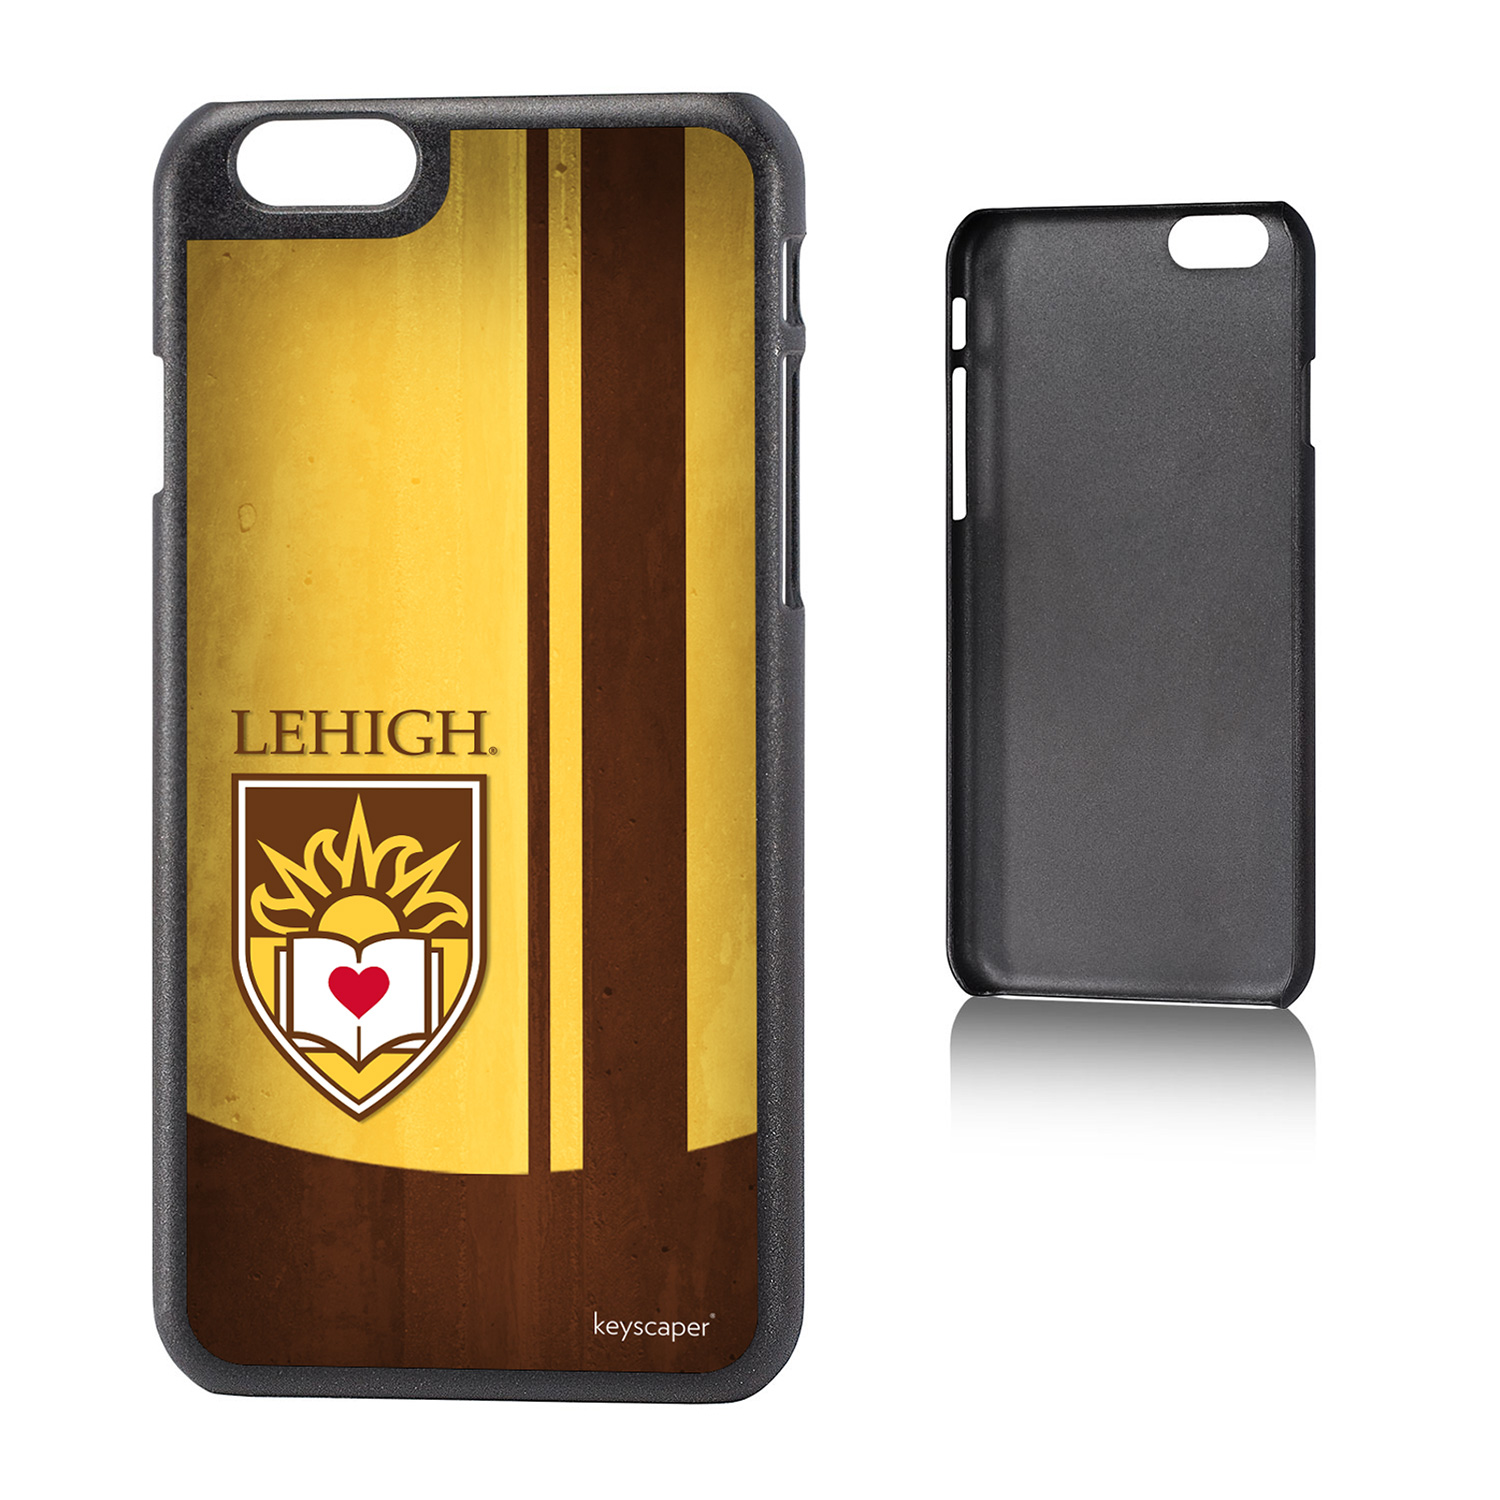 Lehigh University Slim Case for the iPhone 6 / 6S / 7 / 8 NCAA